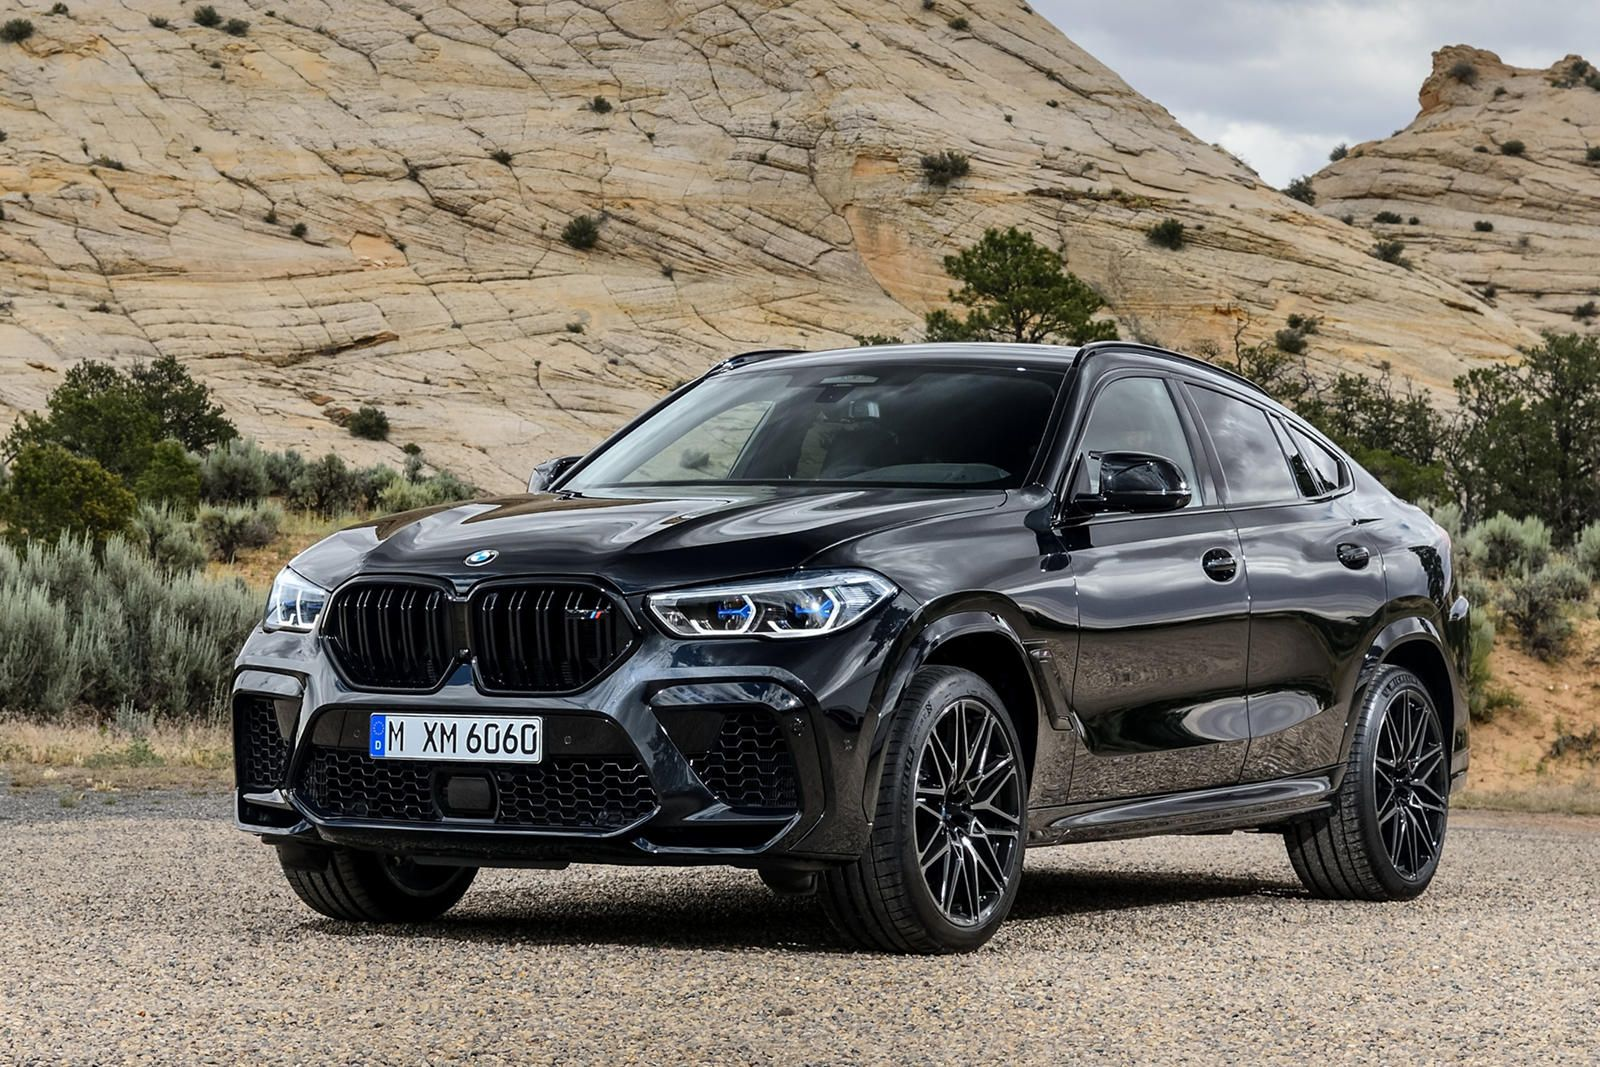 2020 Bmw X6 M First Drive Review It S The Flashy One Bmw S